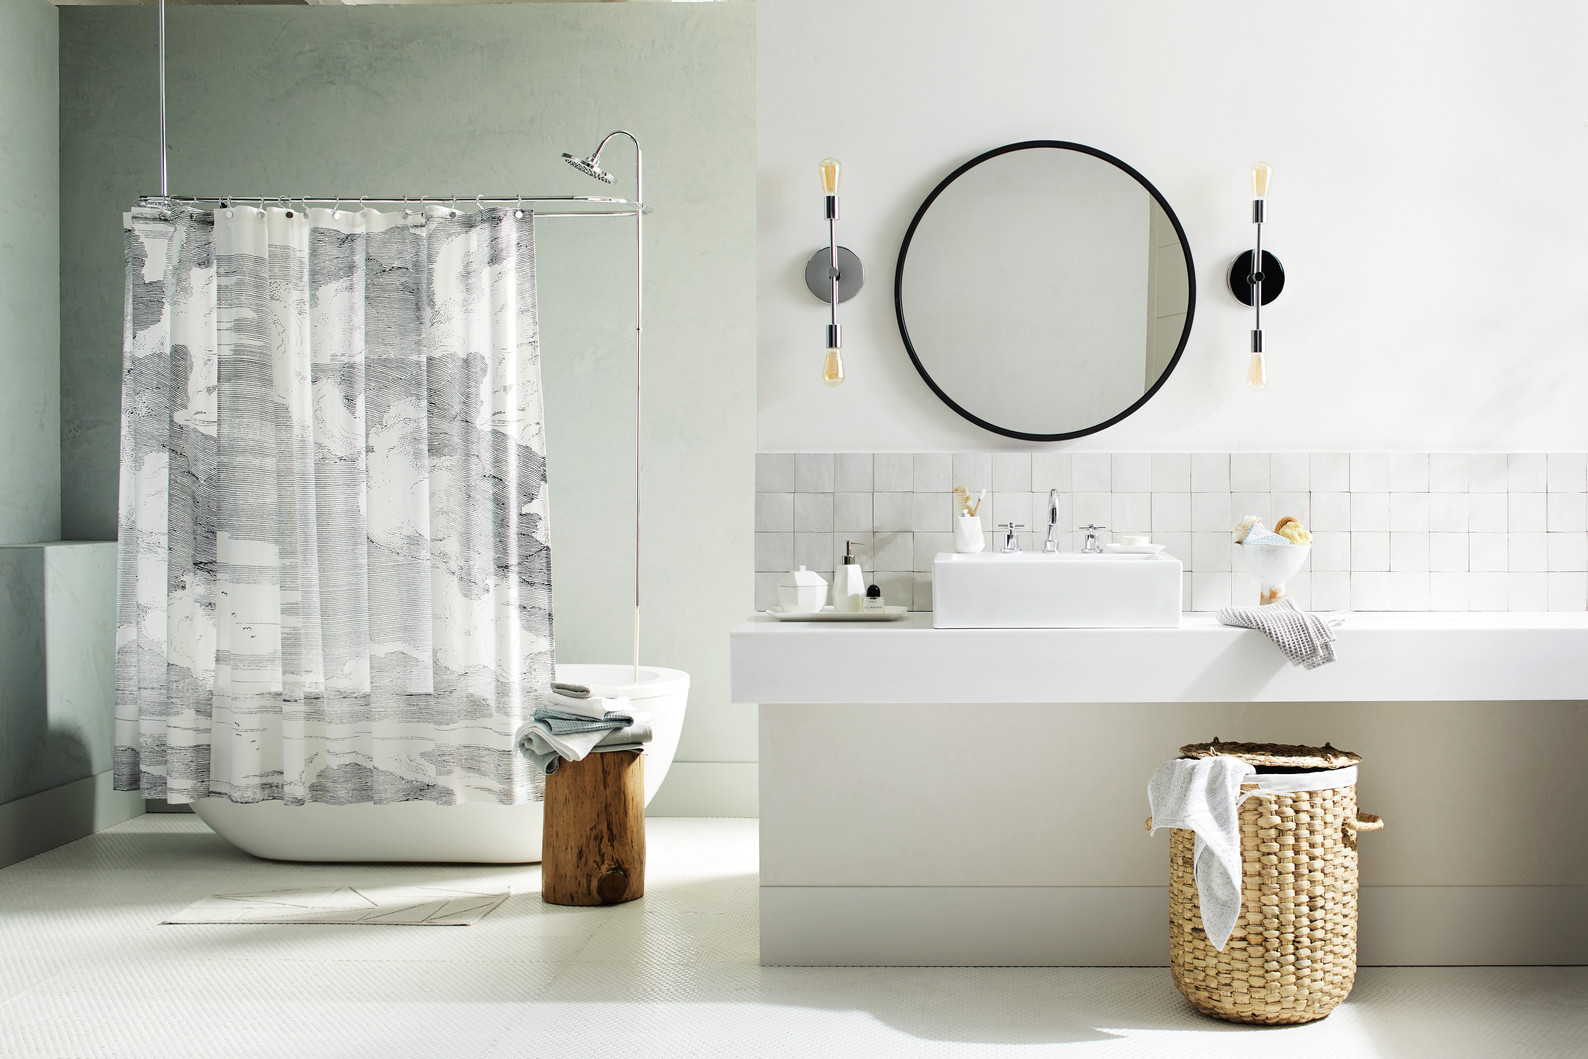 introducing water street our soft stylish and sustainable bath collection west elm